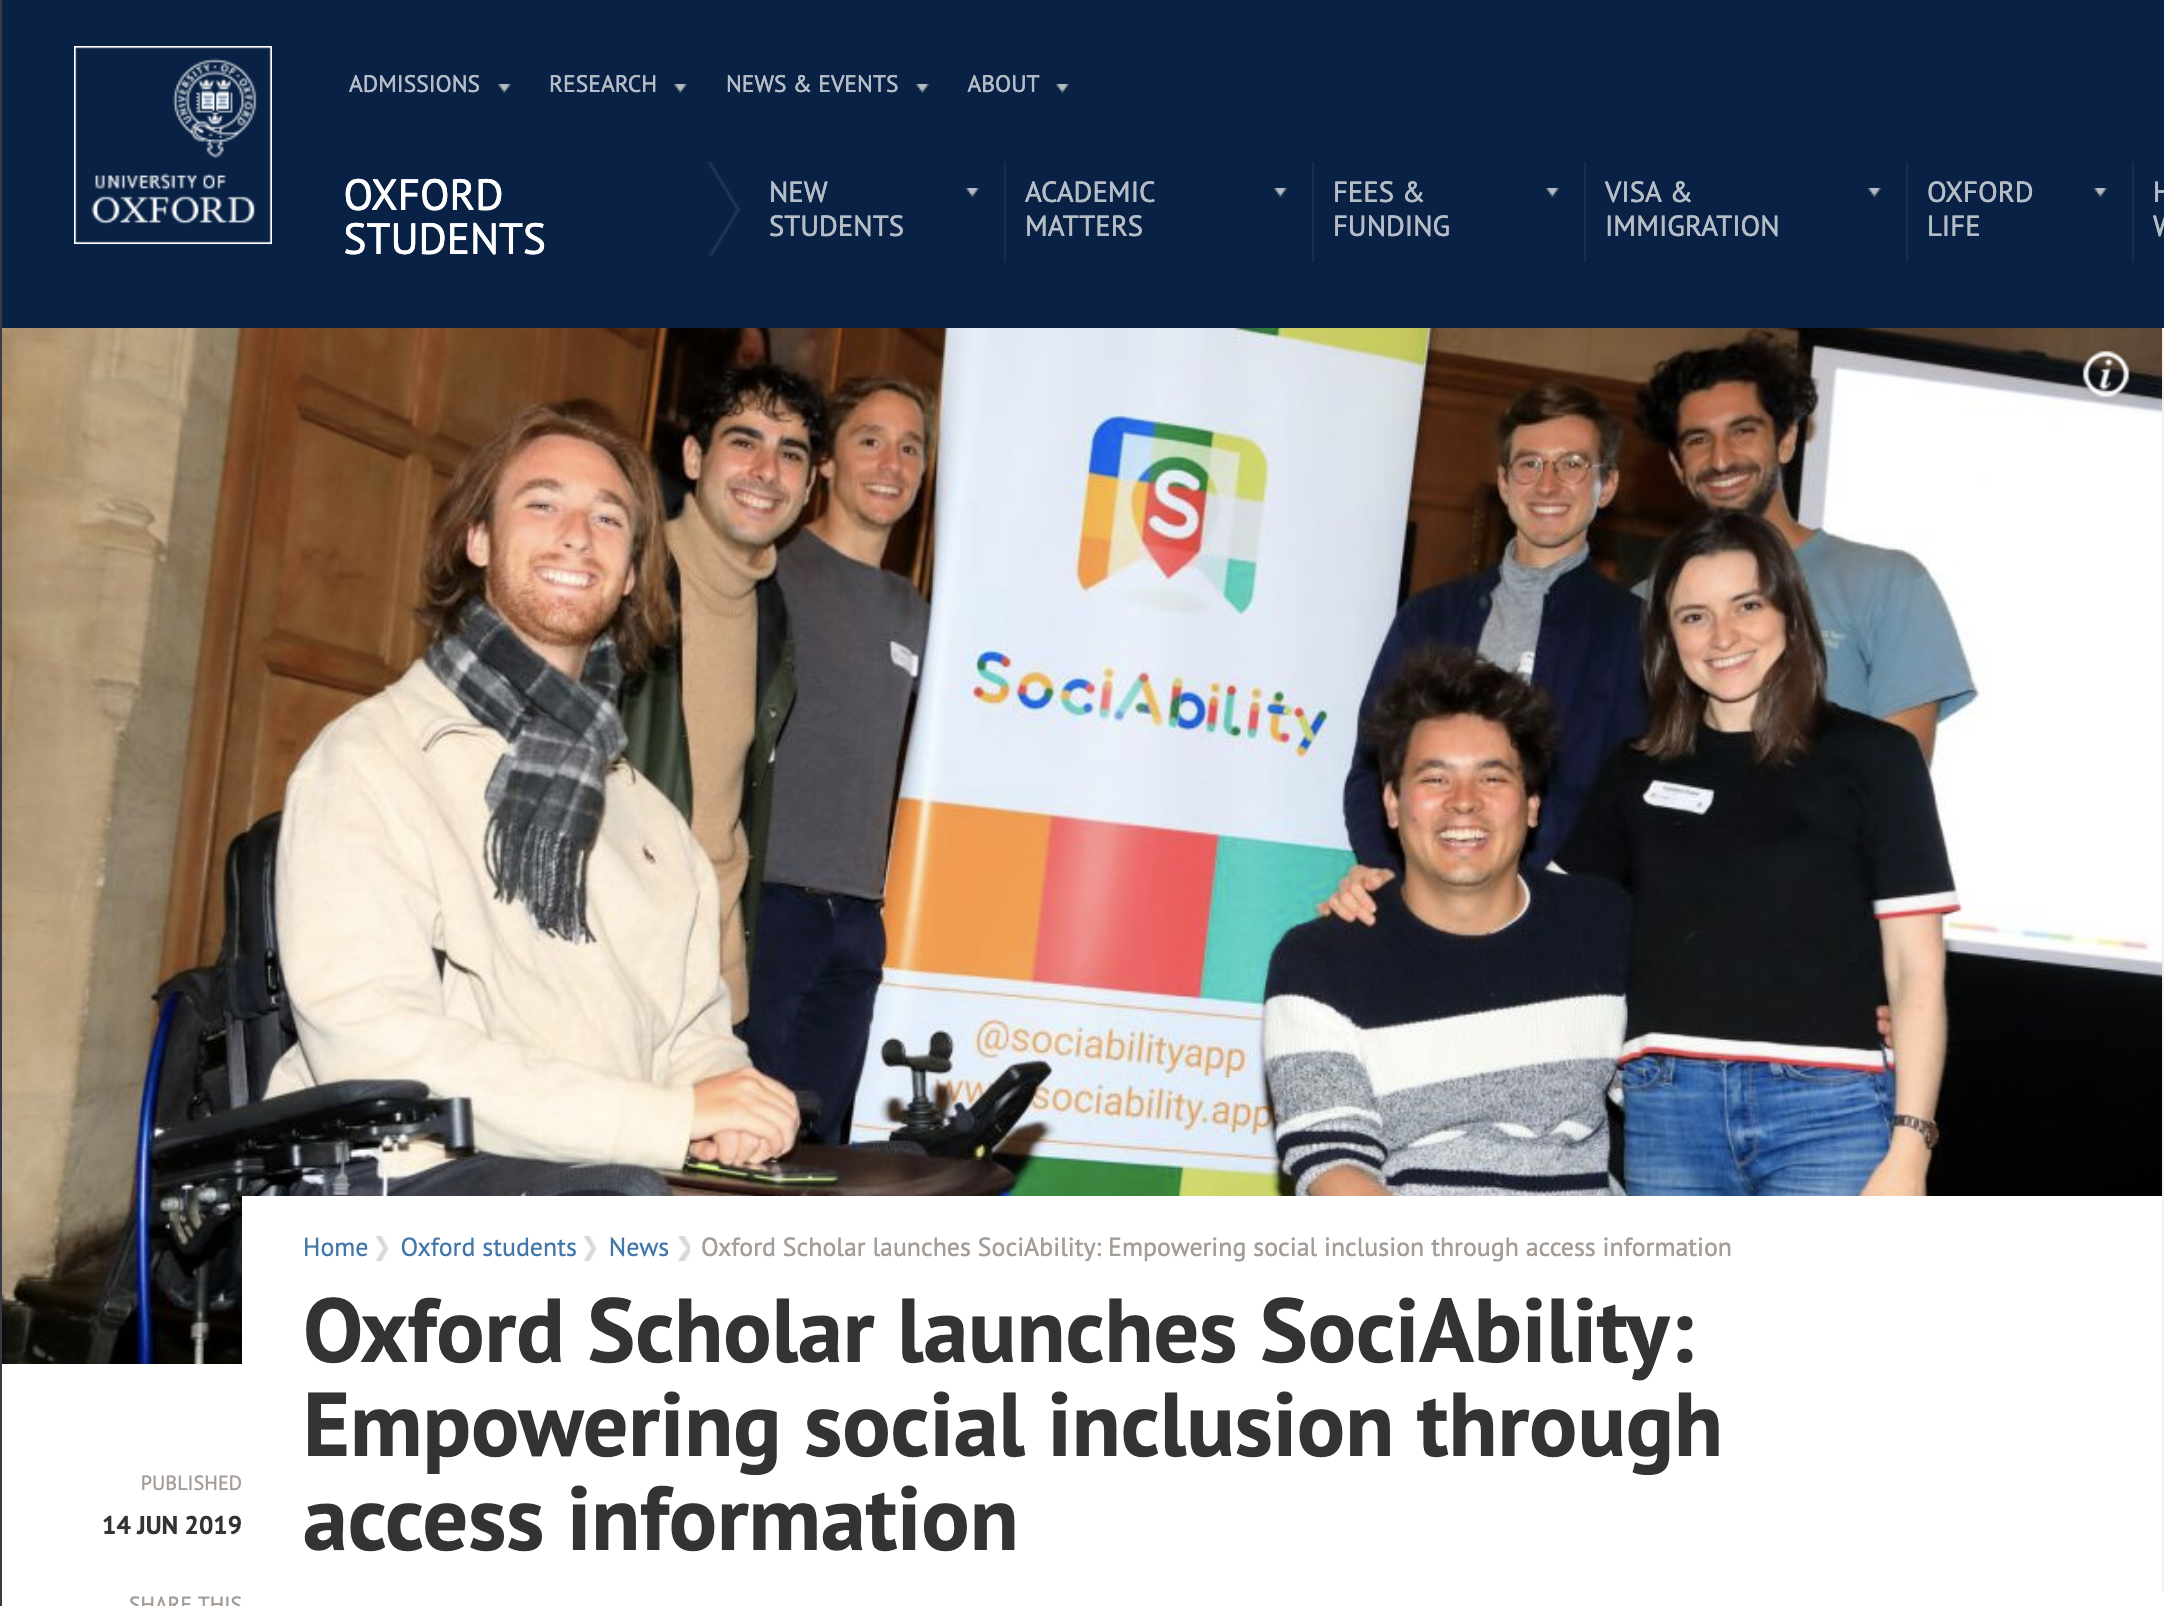 Screenshot of University of Oxford news story about SociAbility launch in June 2019.